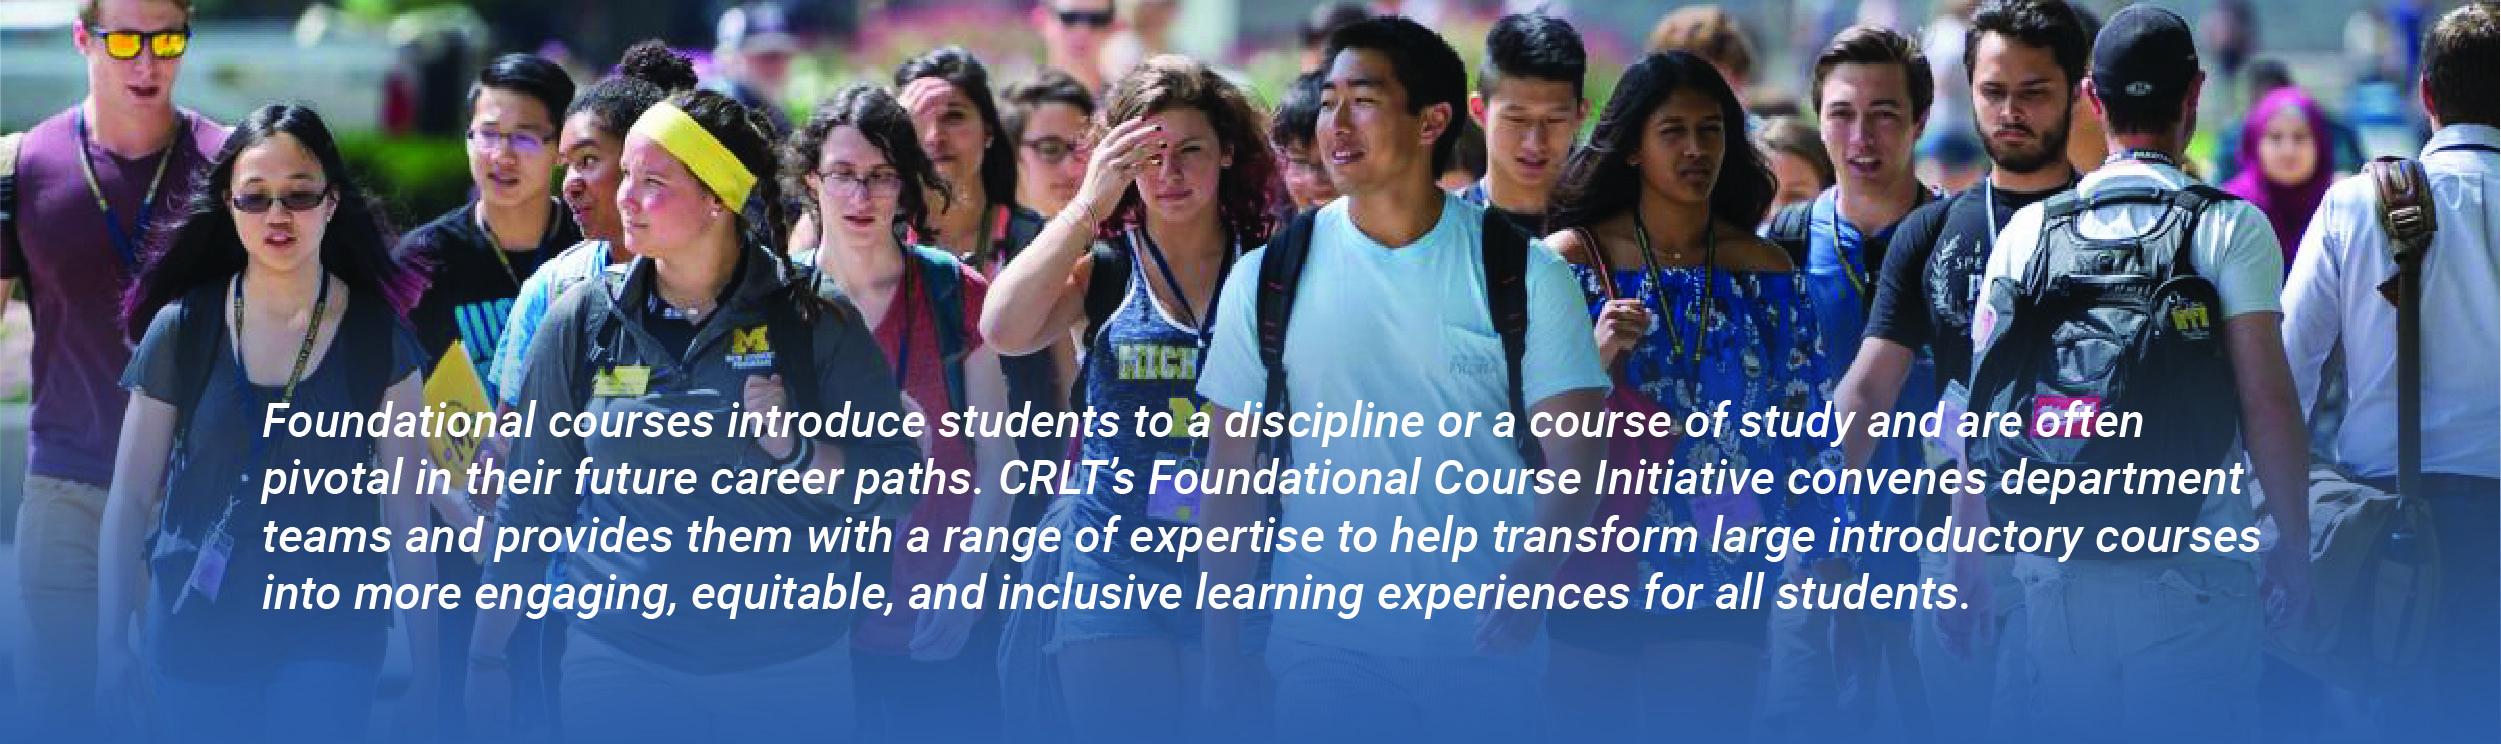 Foundational courses introduce students to a discipline or a course of study and are often pivotal in their future career paths. CRLT's Foundational Course Initiative convenes department teams and provides them with a range of expertise to help transform large introductory courses into more engaging, equitable, and inclusive learning experiences for all students.